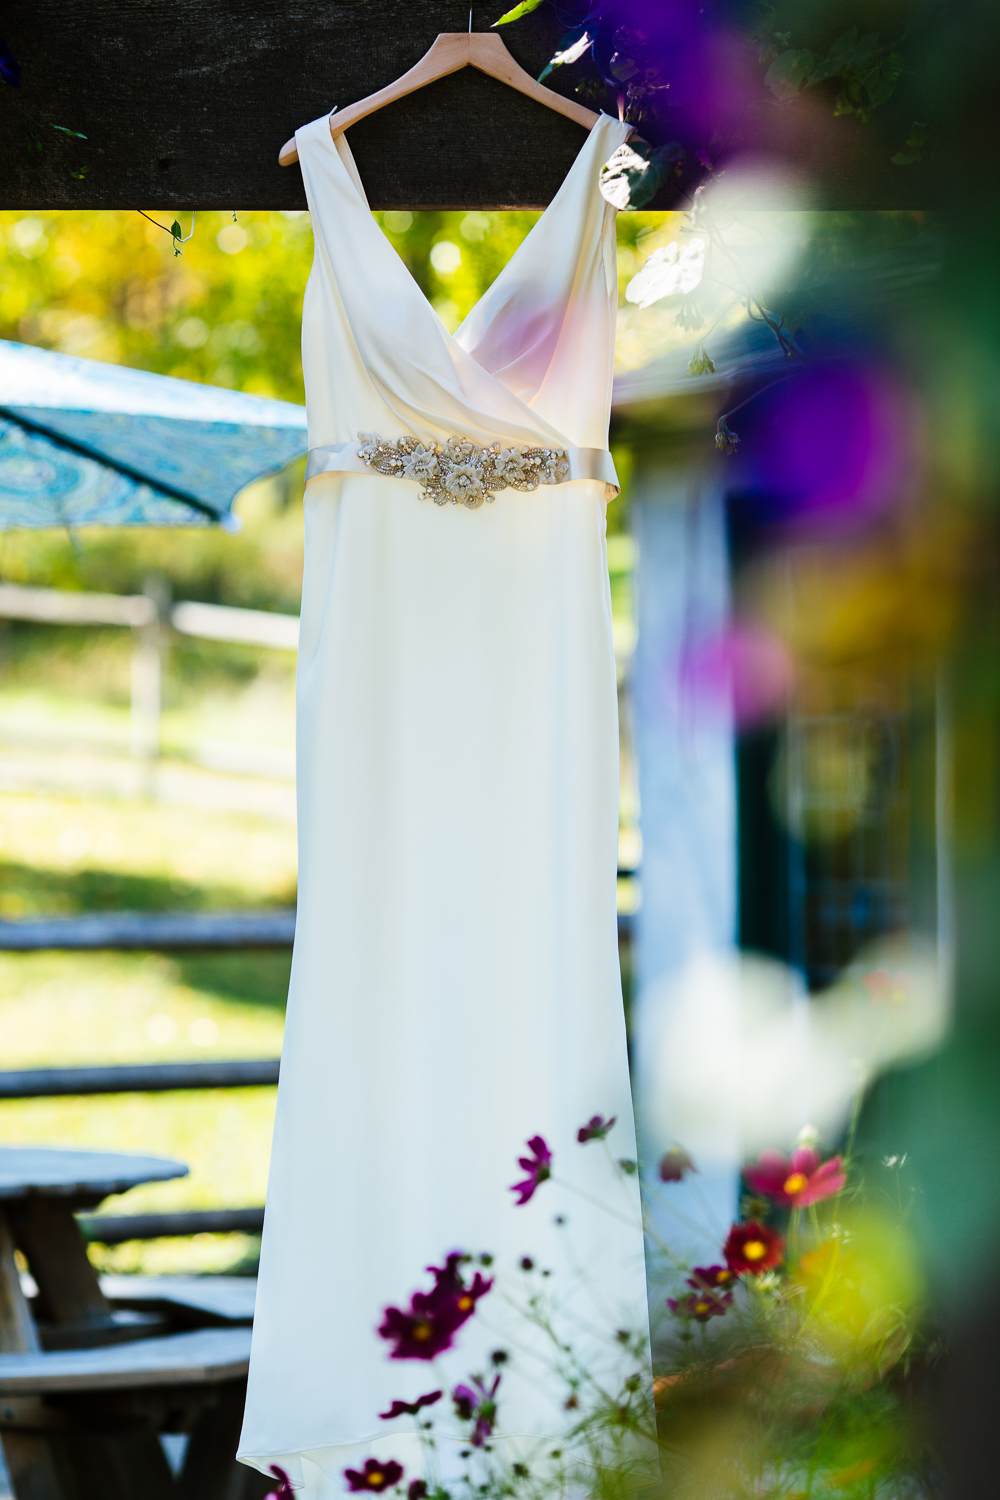 White wedding gown with beaded belt.